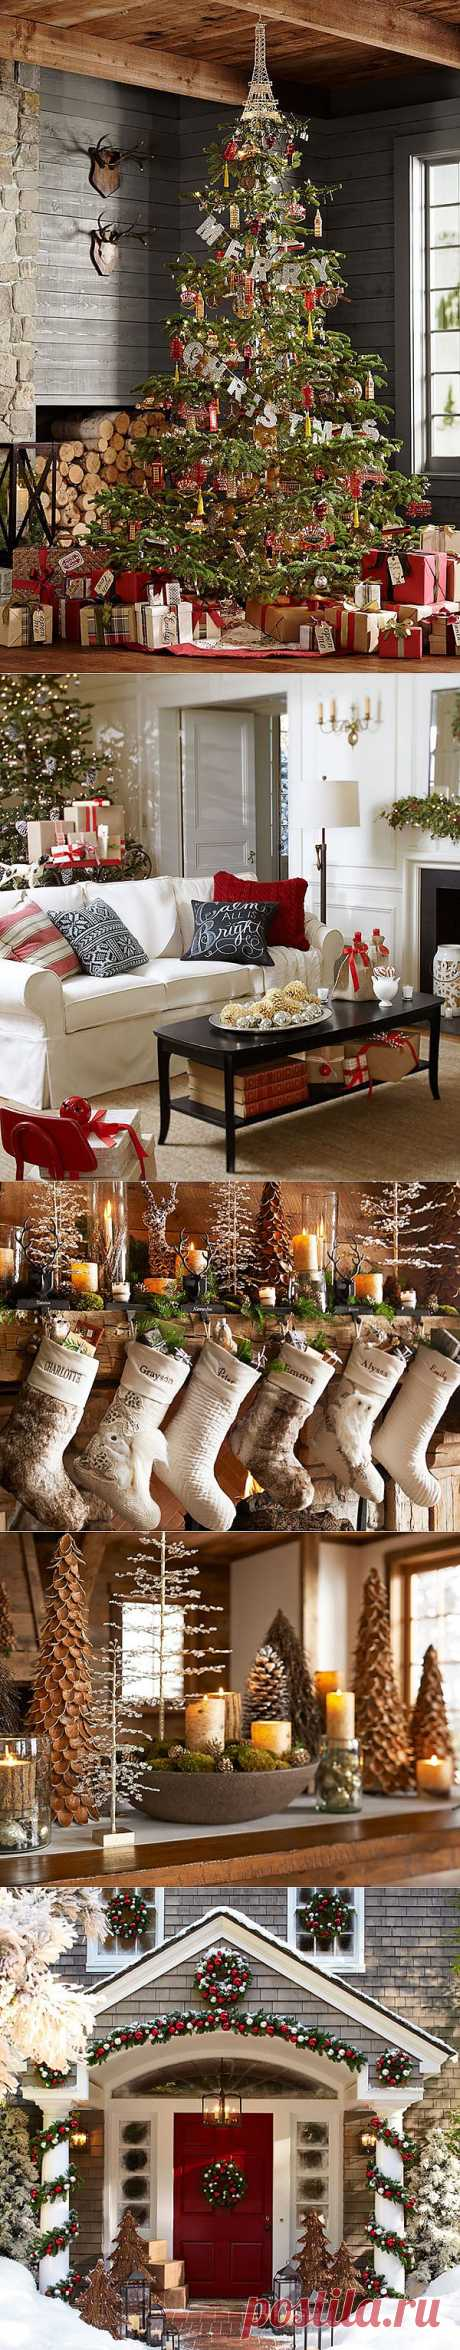 New Year's ideas of registration in the new Pottery Barn collection.